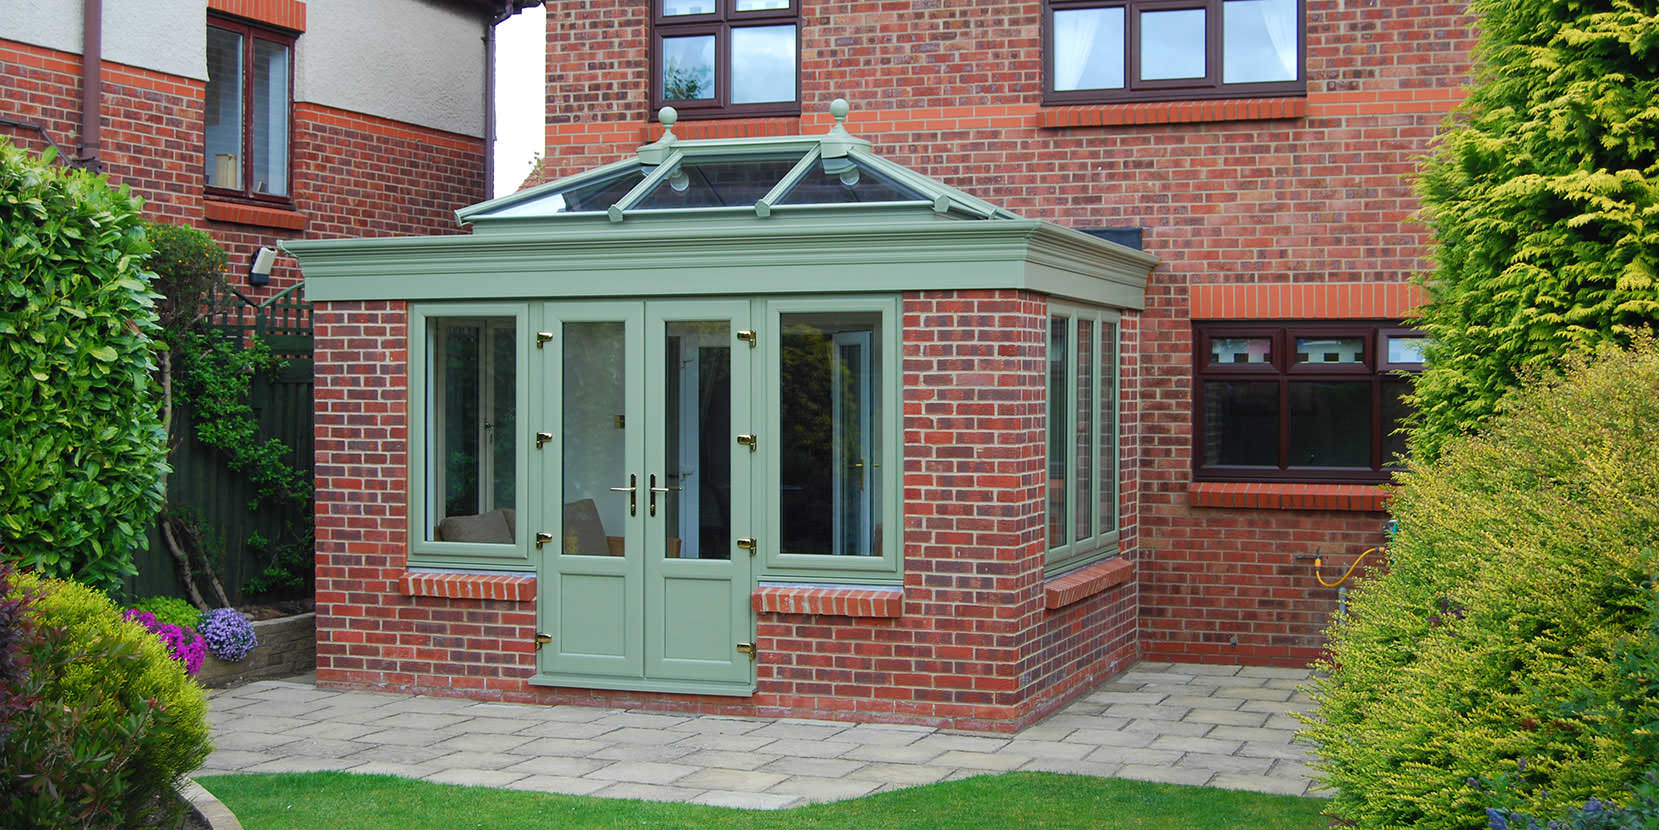 How to Furnish Your Orangery?